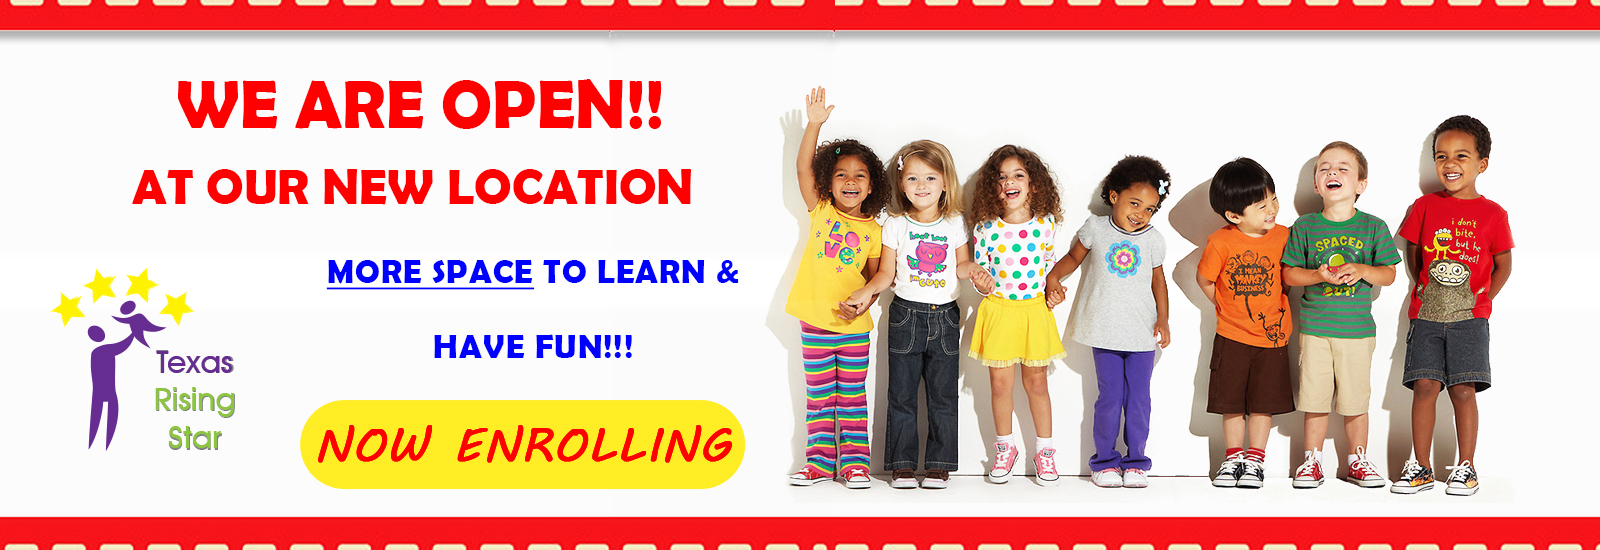 Open Now Enrolling Little Creations Learning Center